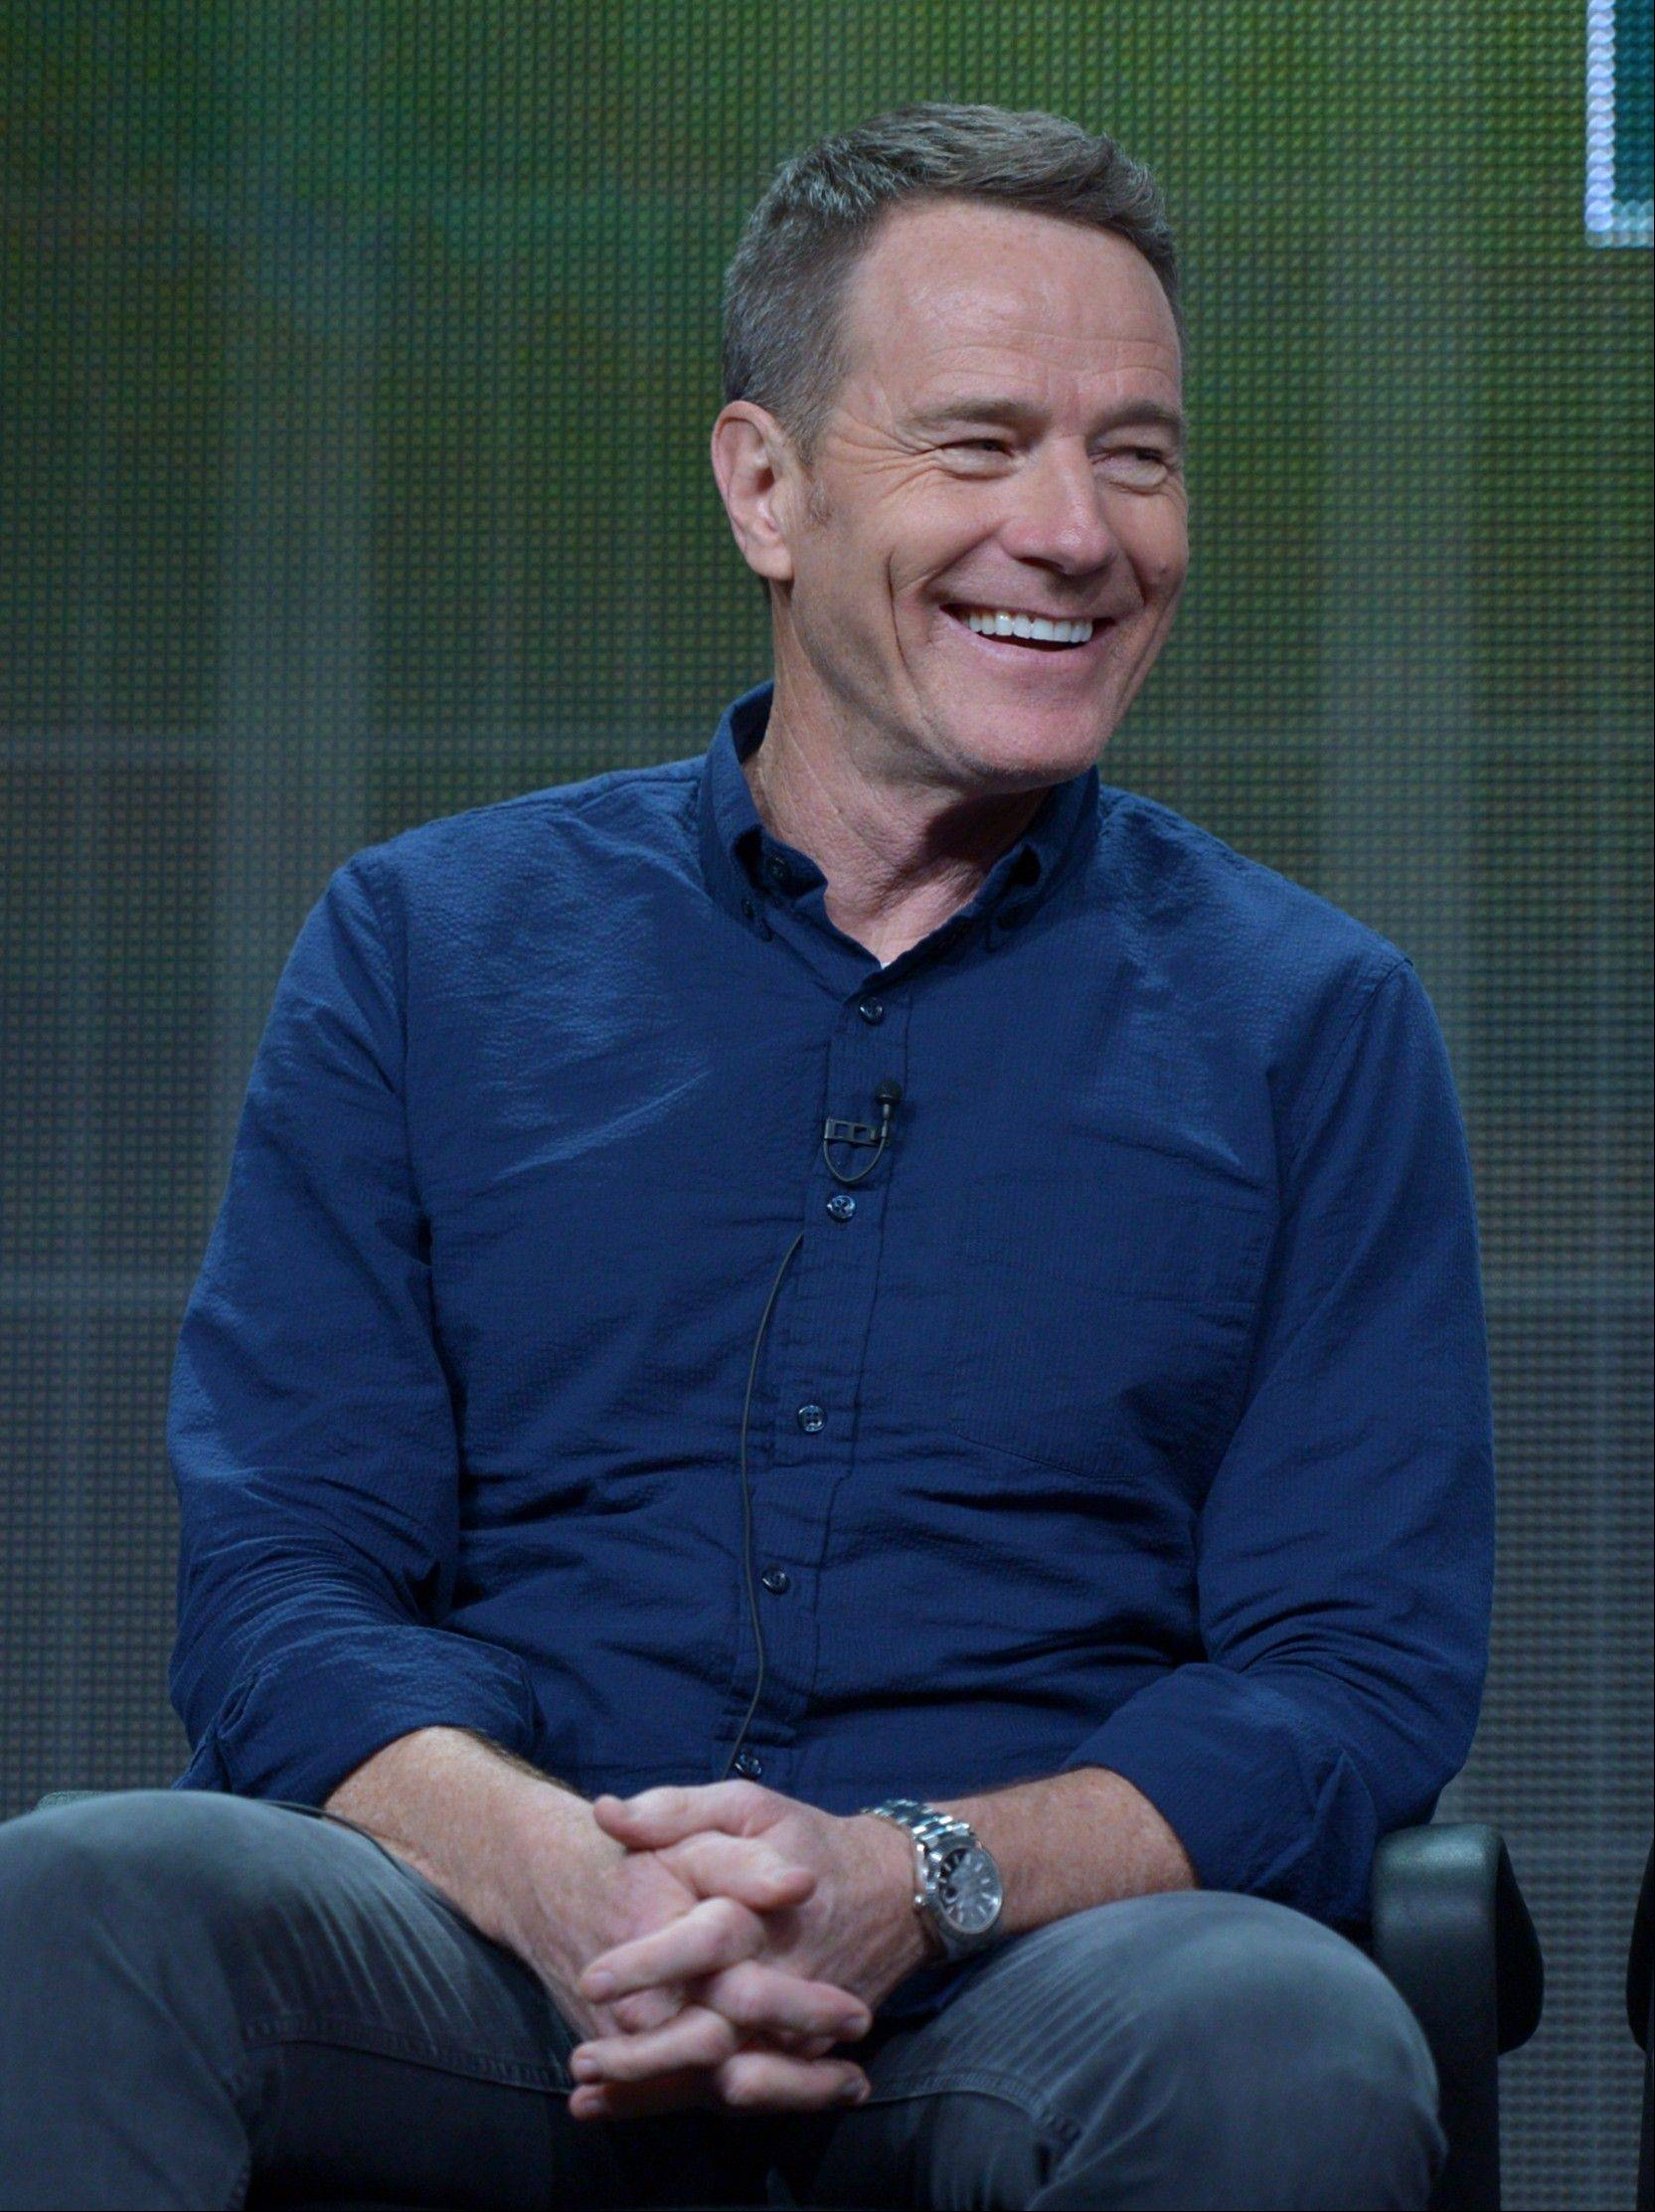 Bryan Cranston will star as blacklisted screenwriter Dalton Trumbo in a film that will be his first after wrapping �Breaking Bad.�